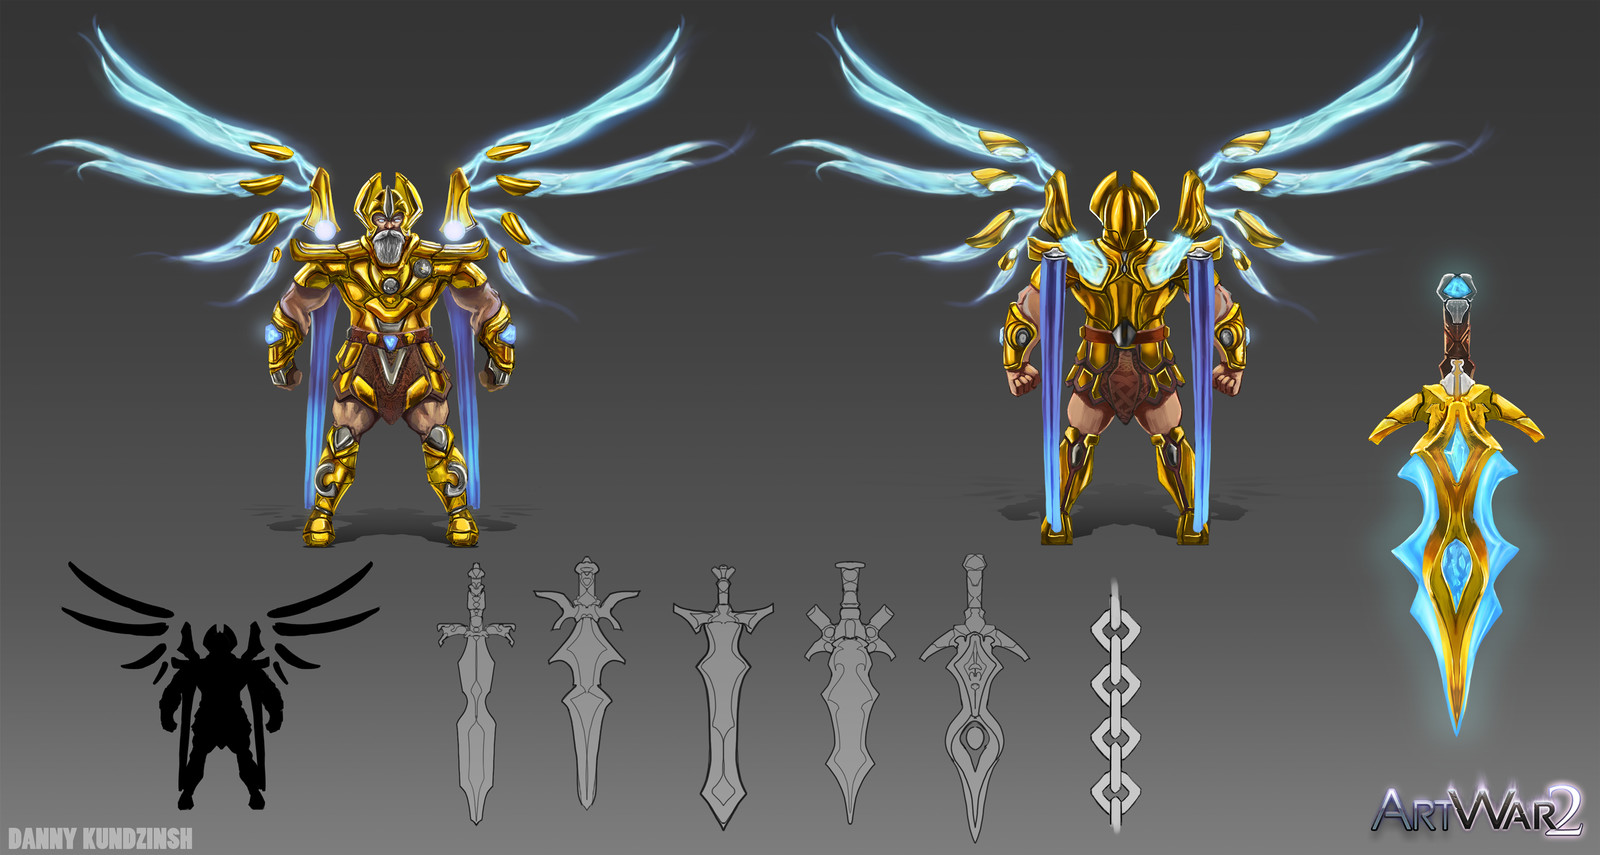 Artwar2 concept sheet - Archangel Michael